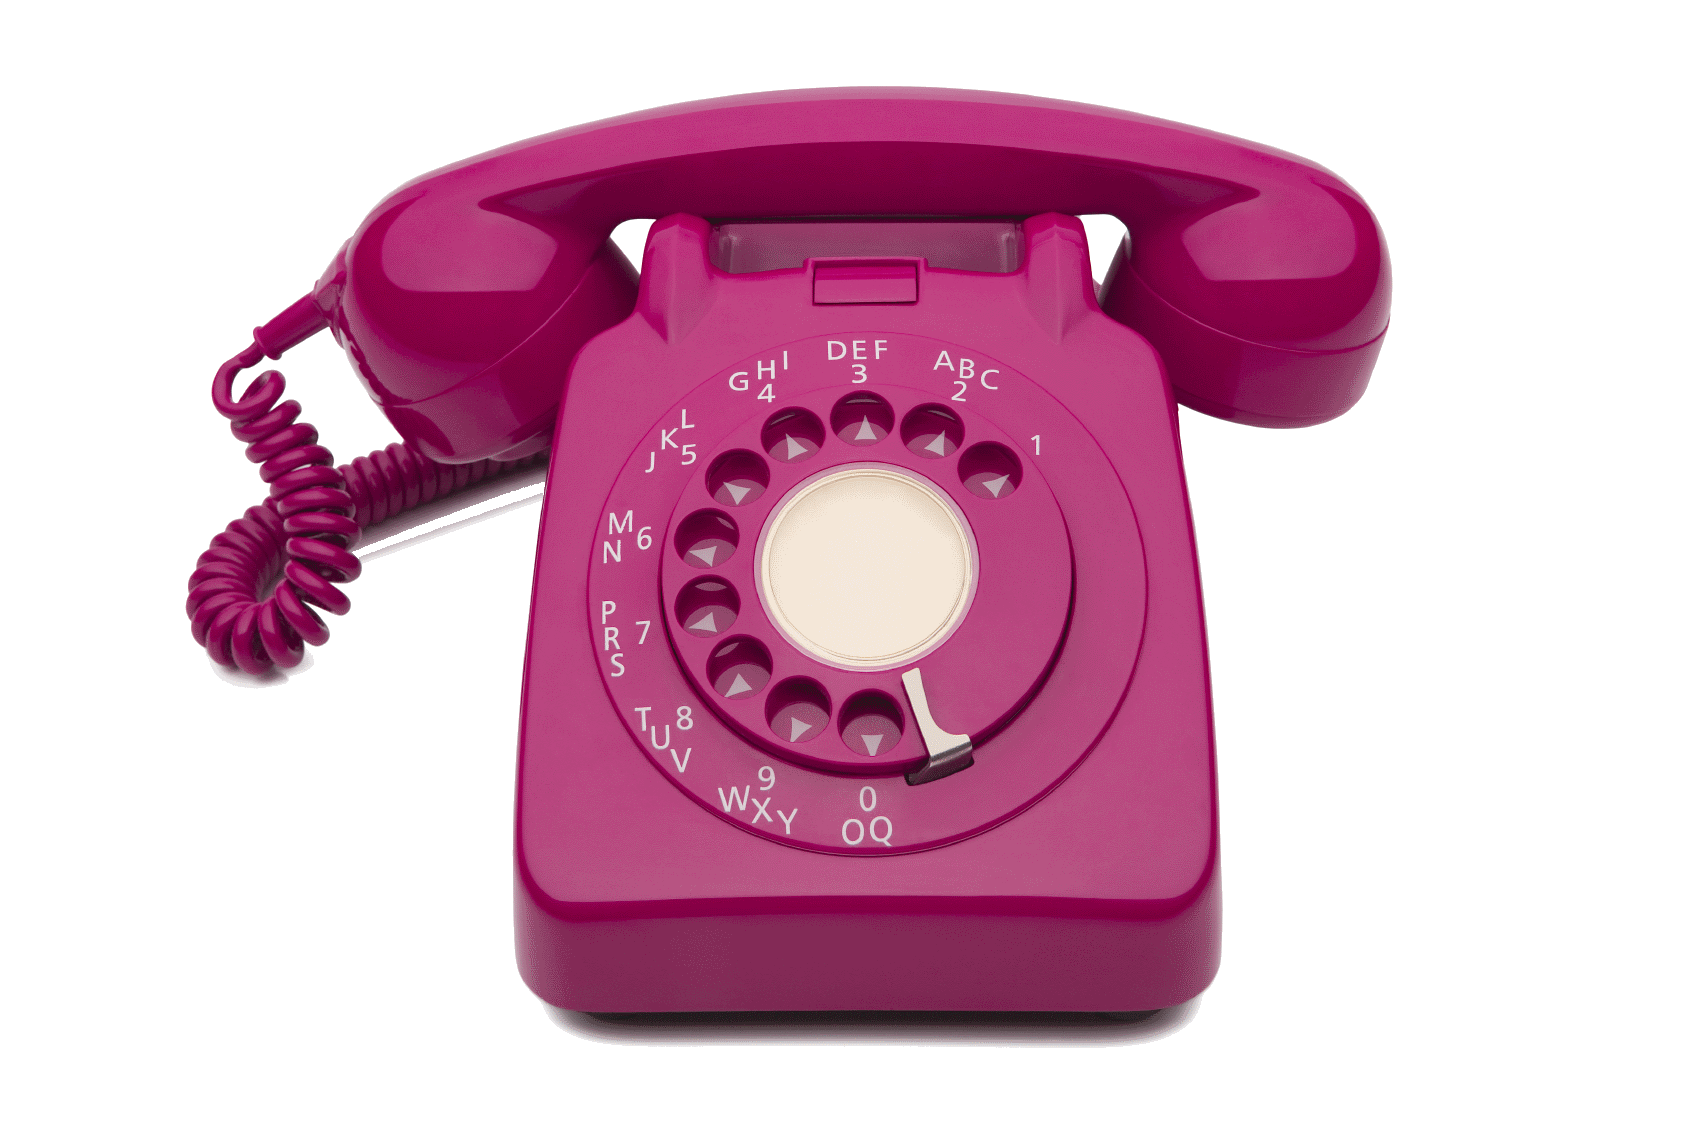 Phone clipart rotary phone. Telephone png transparent images